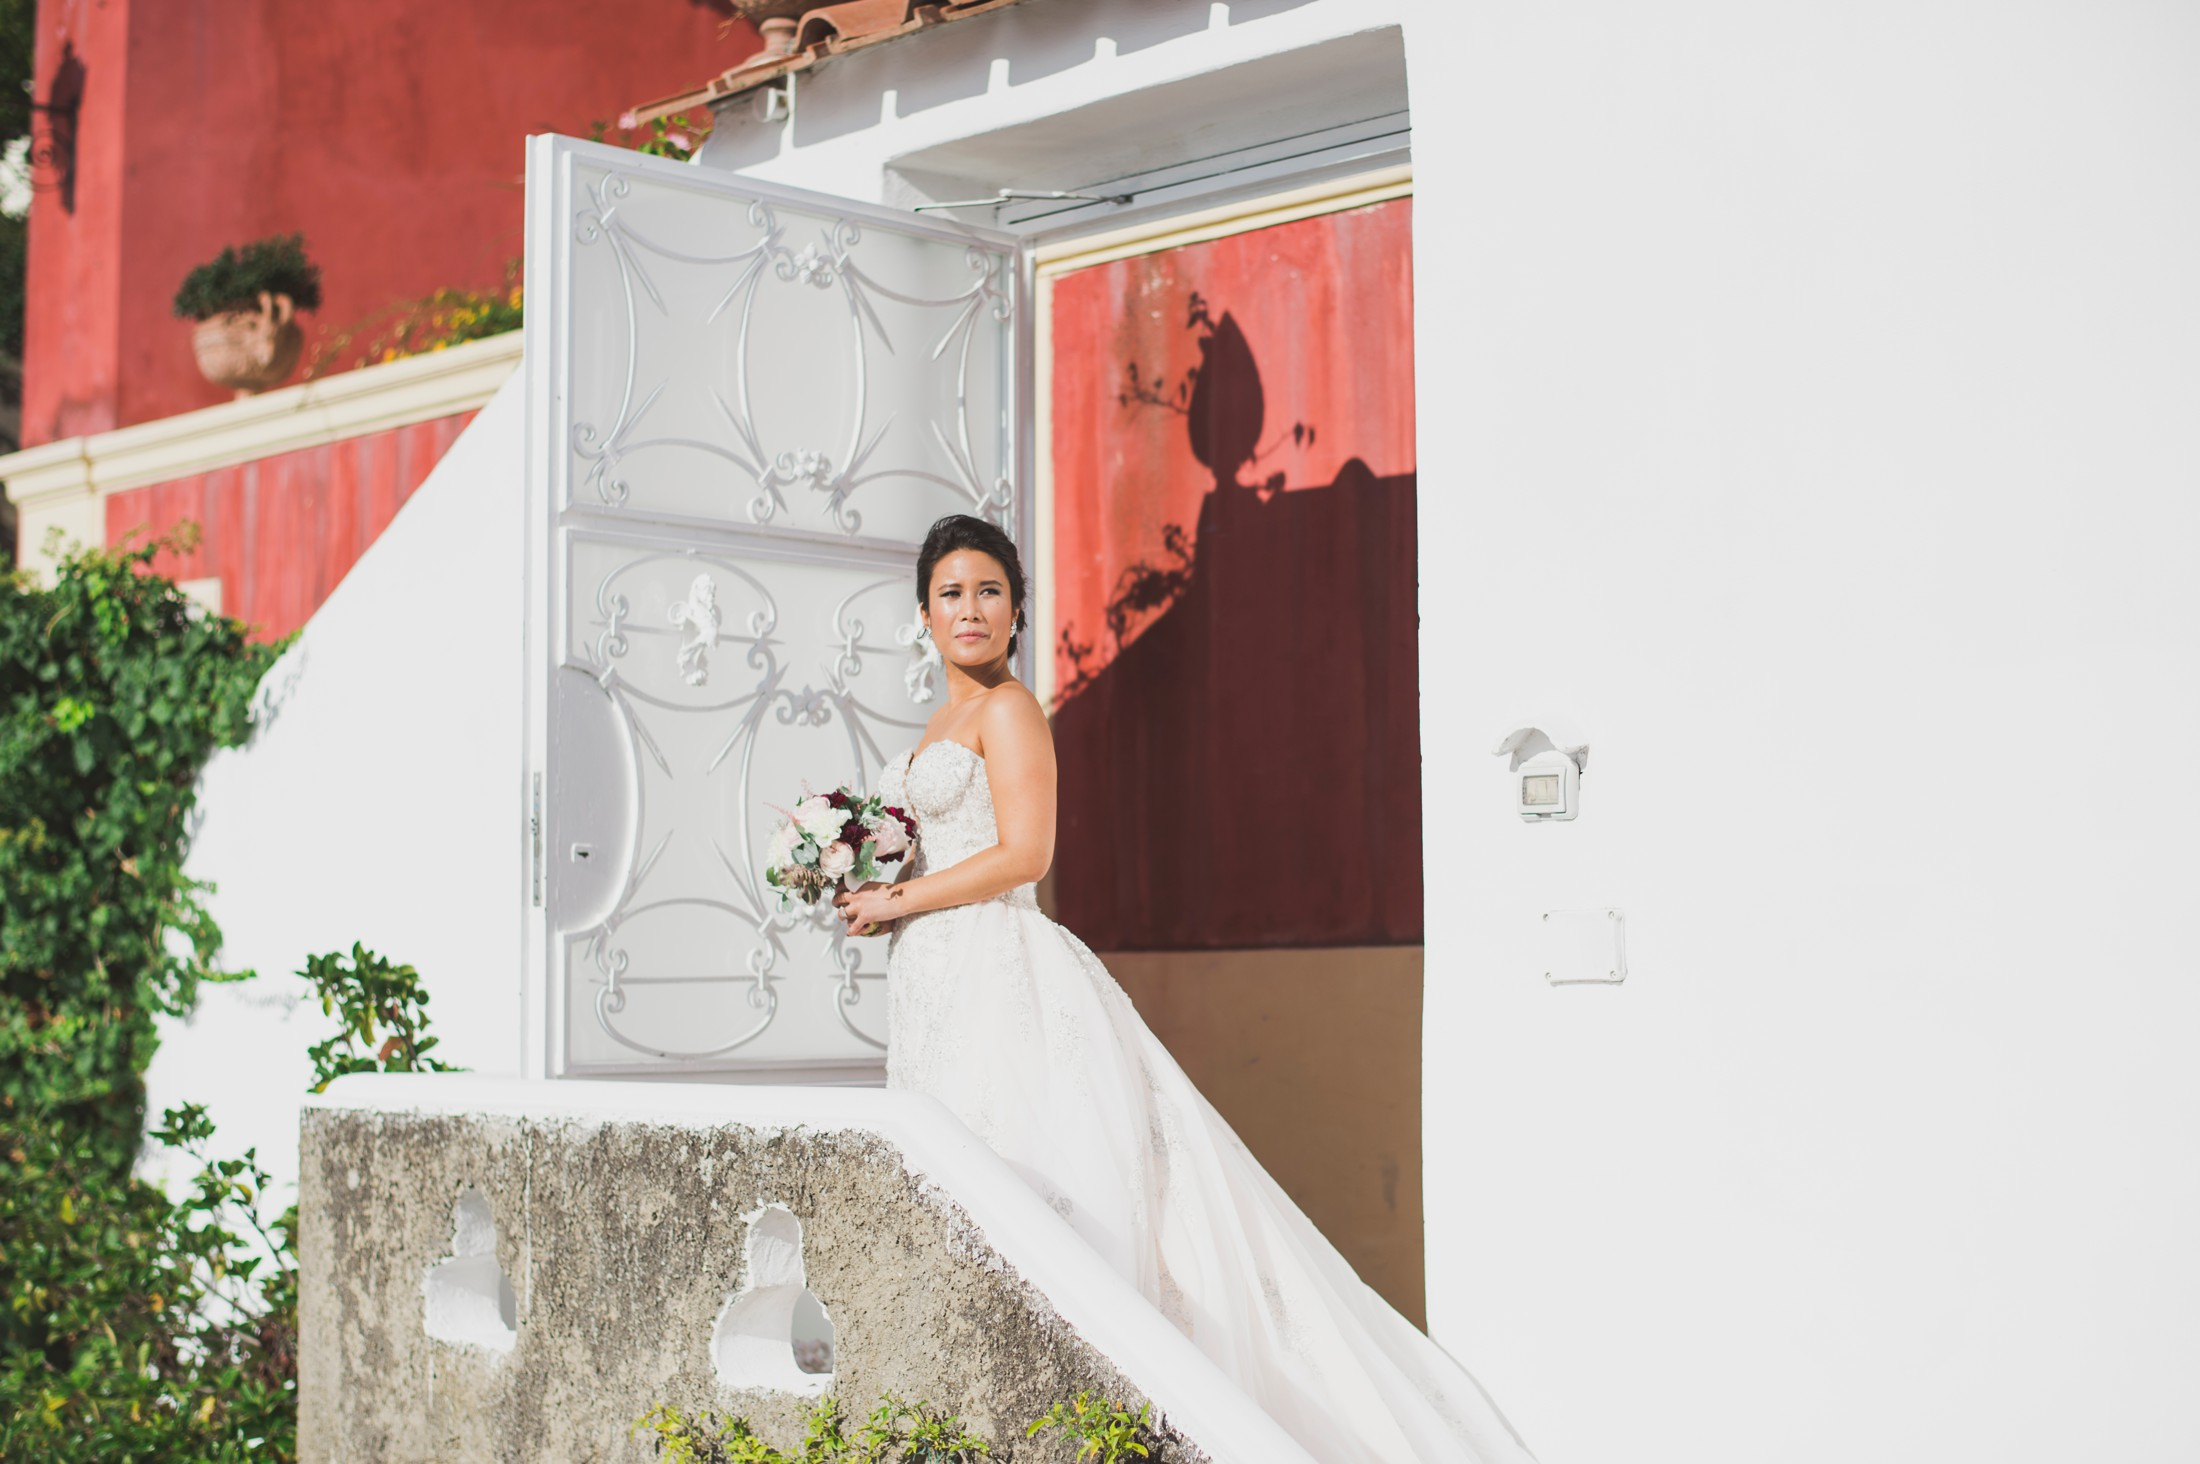 positano wedding bride's portrait